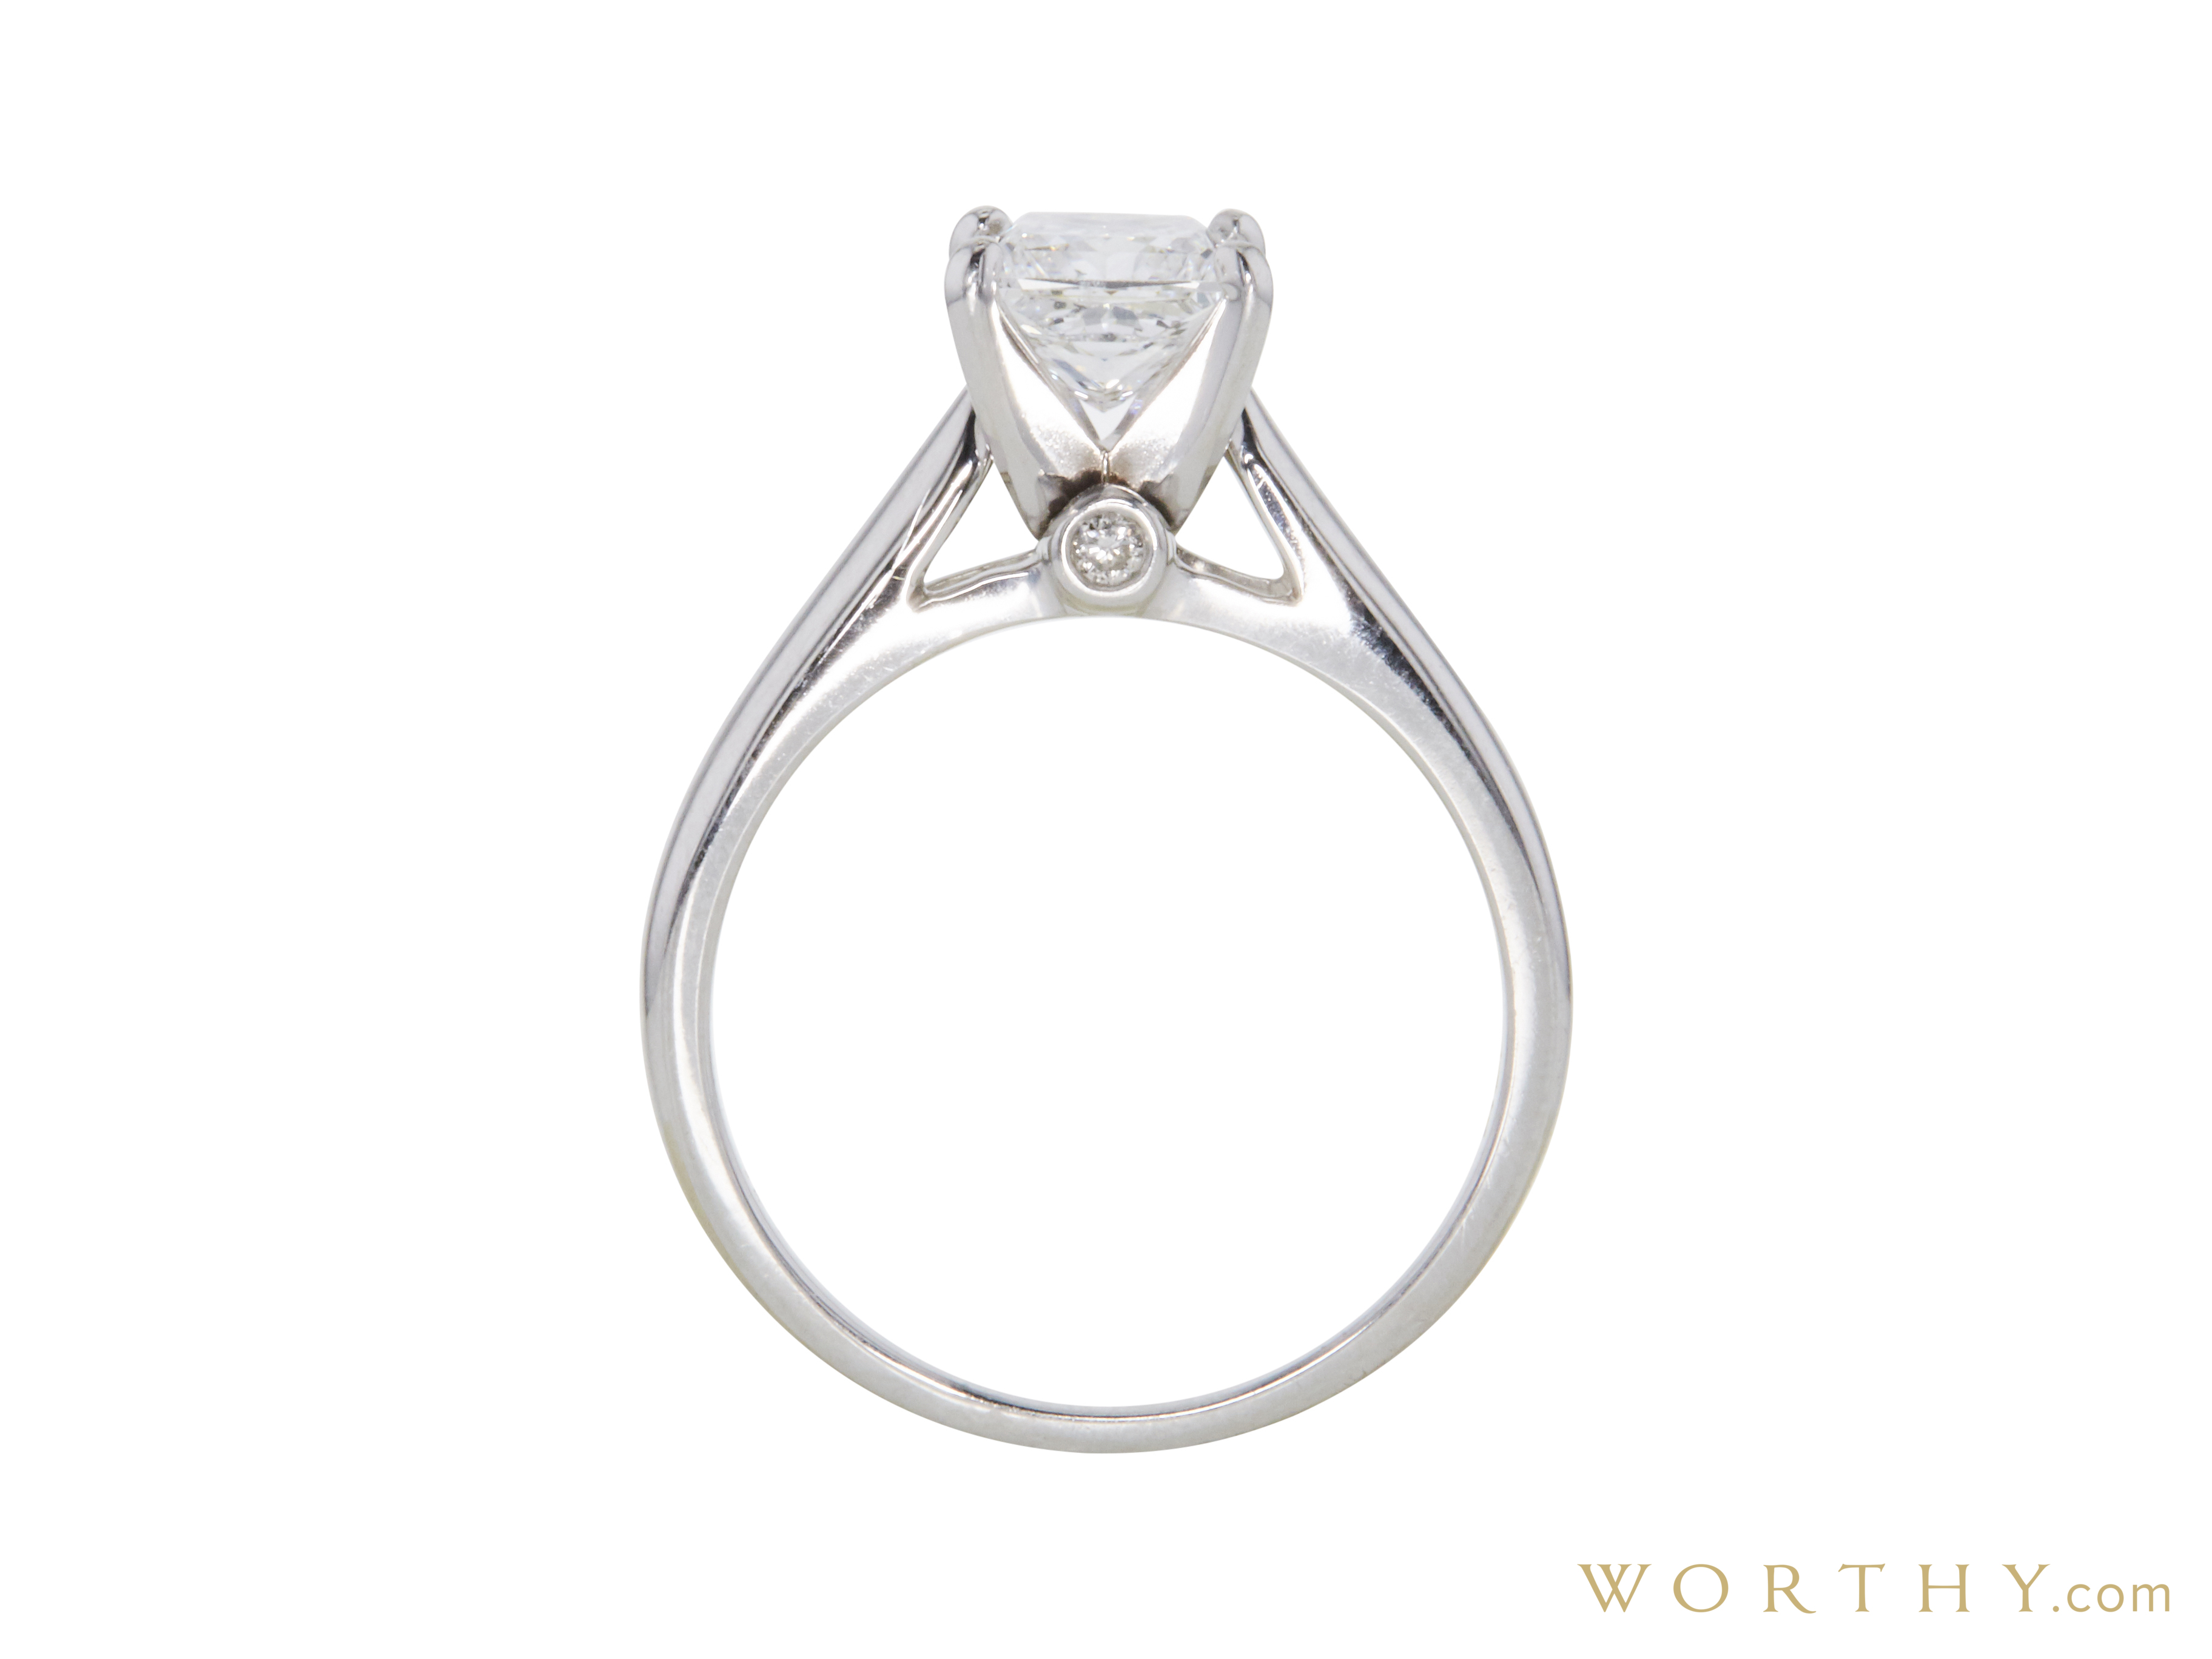 0.71 ct. Radiant Modified Cut Solitaire Tiffany & Co. Ring